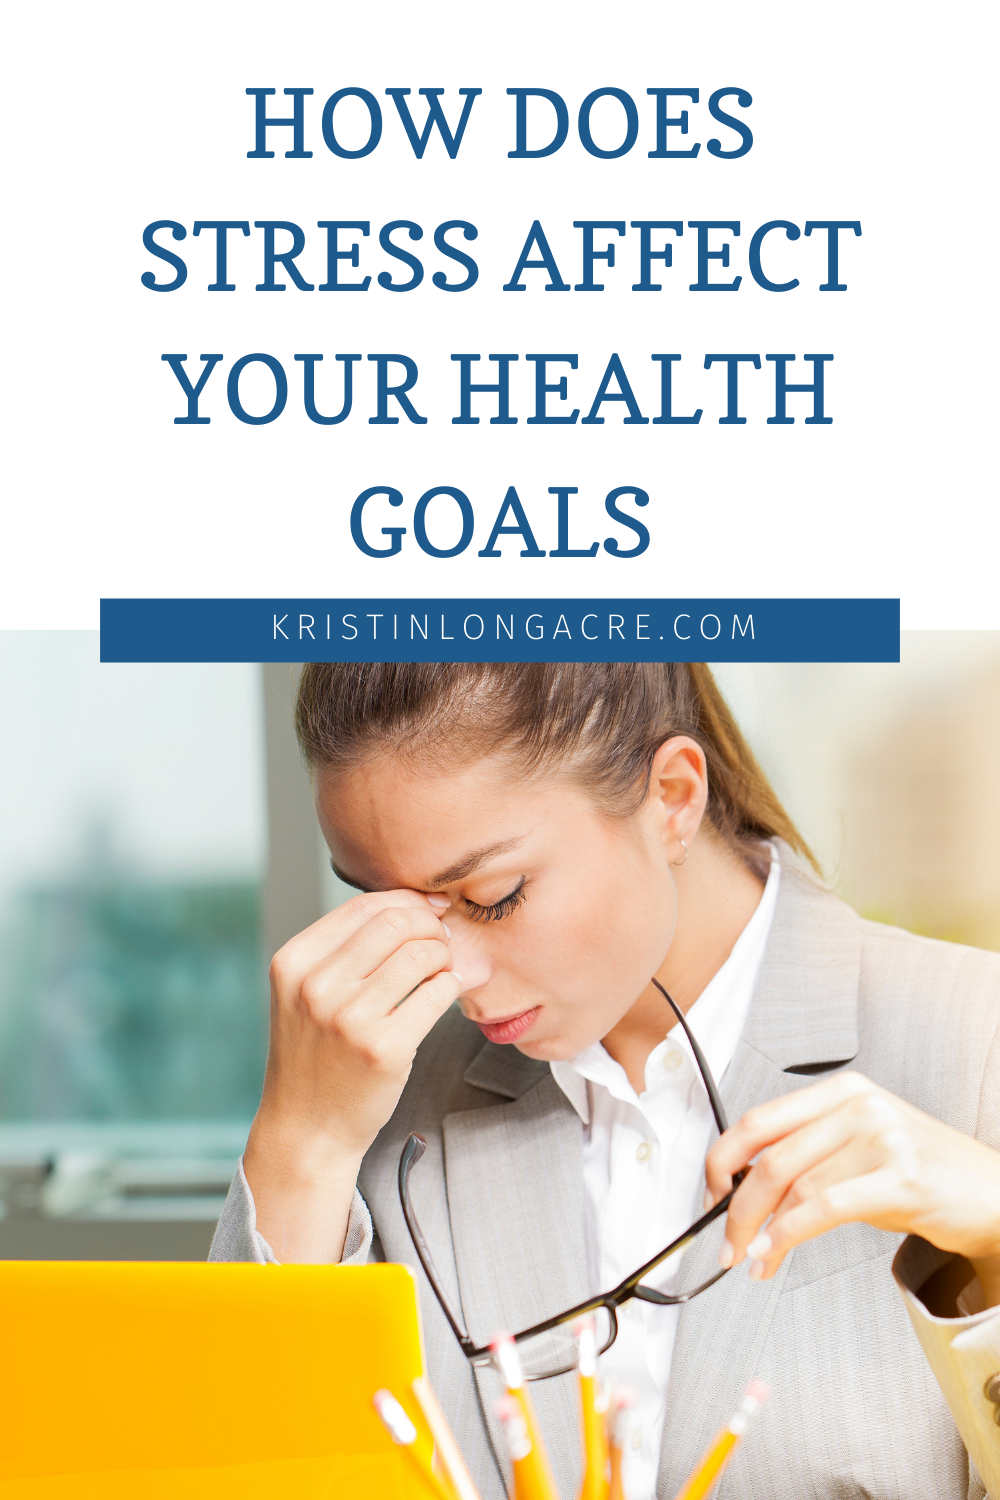 How Does Stress Affect Your Health Goals